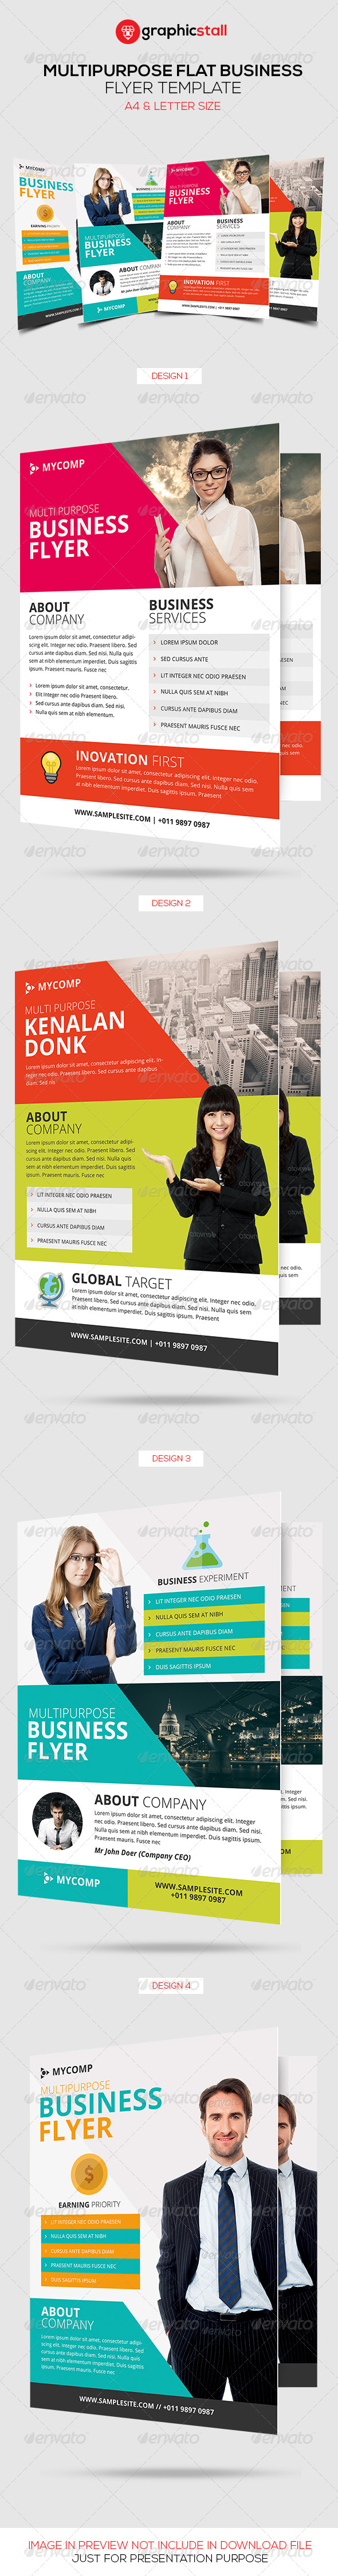 GraphicRiver Multipurpose Flat Business Flyer 6753711